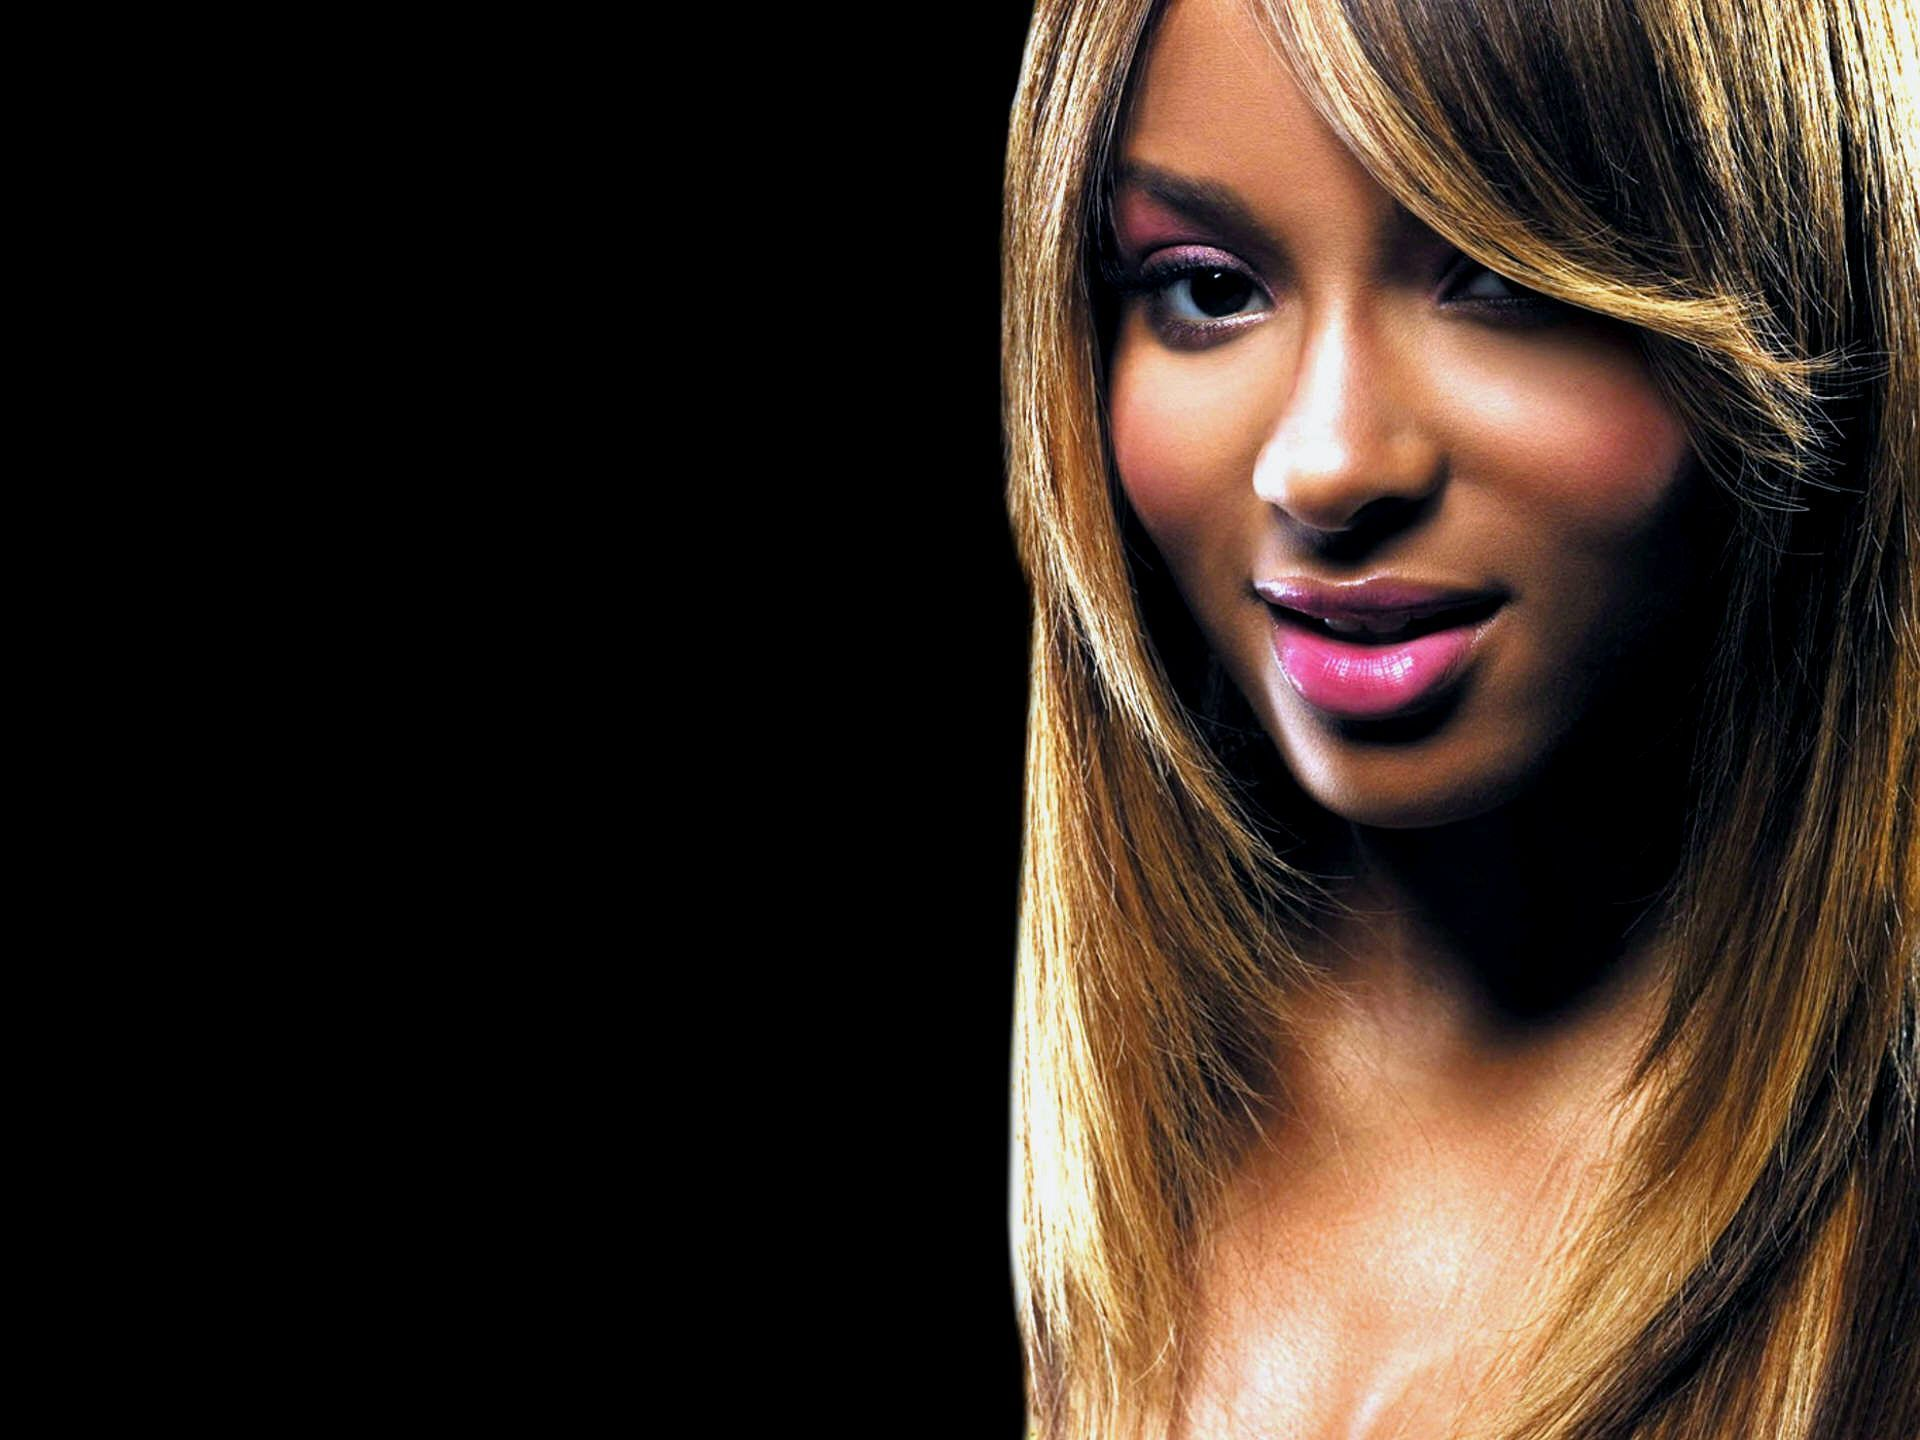 ciara wallpapers images photos pictures backgrounds